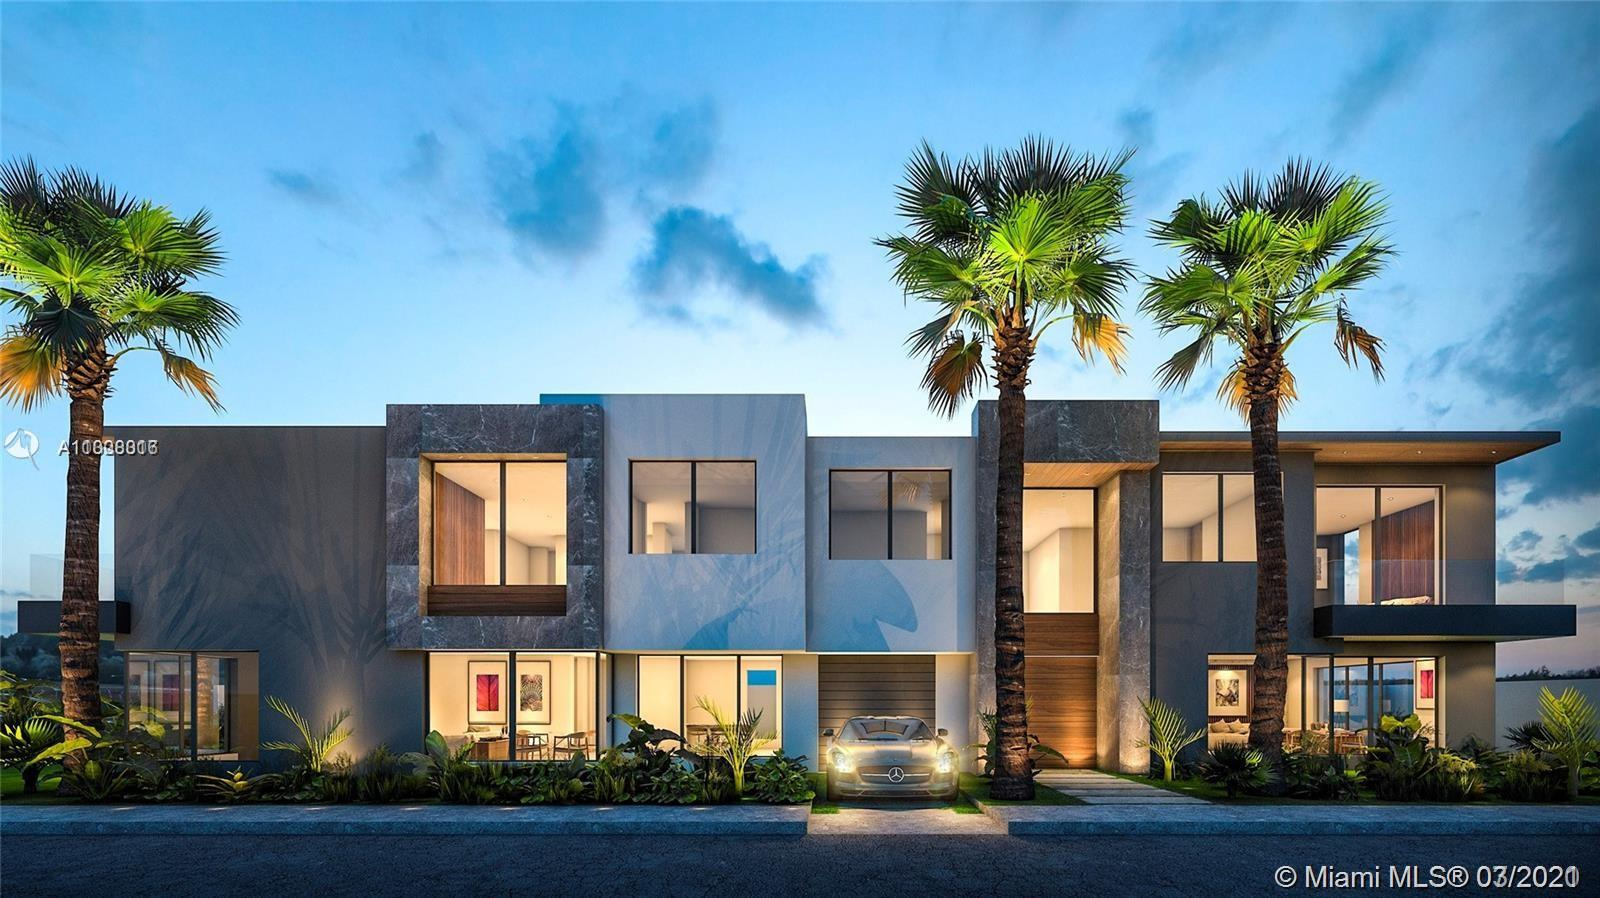 Pre-Construction Townhome in beautiful Croissant Park. Custom modern design planned with all high end features thoughout. 3 Bedrooms / 3 Baths with option for 4th Bedroom in loft area. Each will have 2800 sq ft under air. Architect will incorporate the outside landscape and insure natural light inside the home. Private covered garage with extra parking. Occupancy May 2021. Property is located close to downtown Fort Lauderdale and FLL airport.